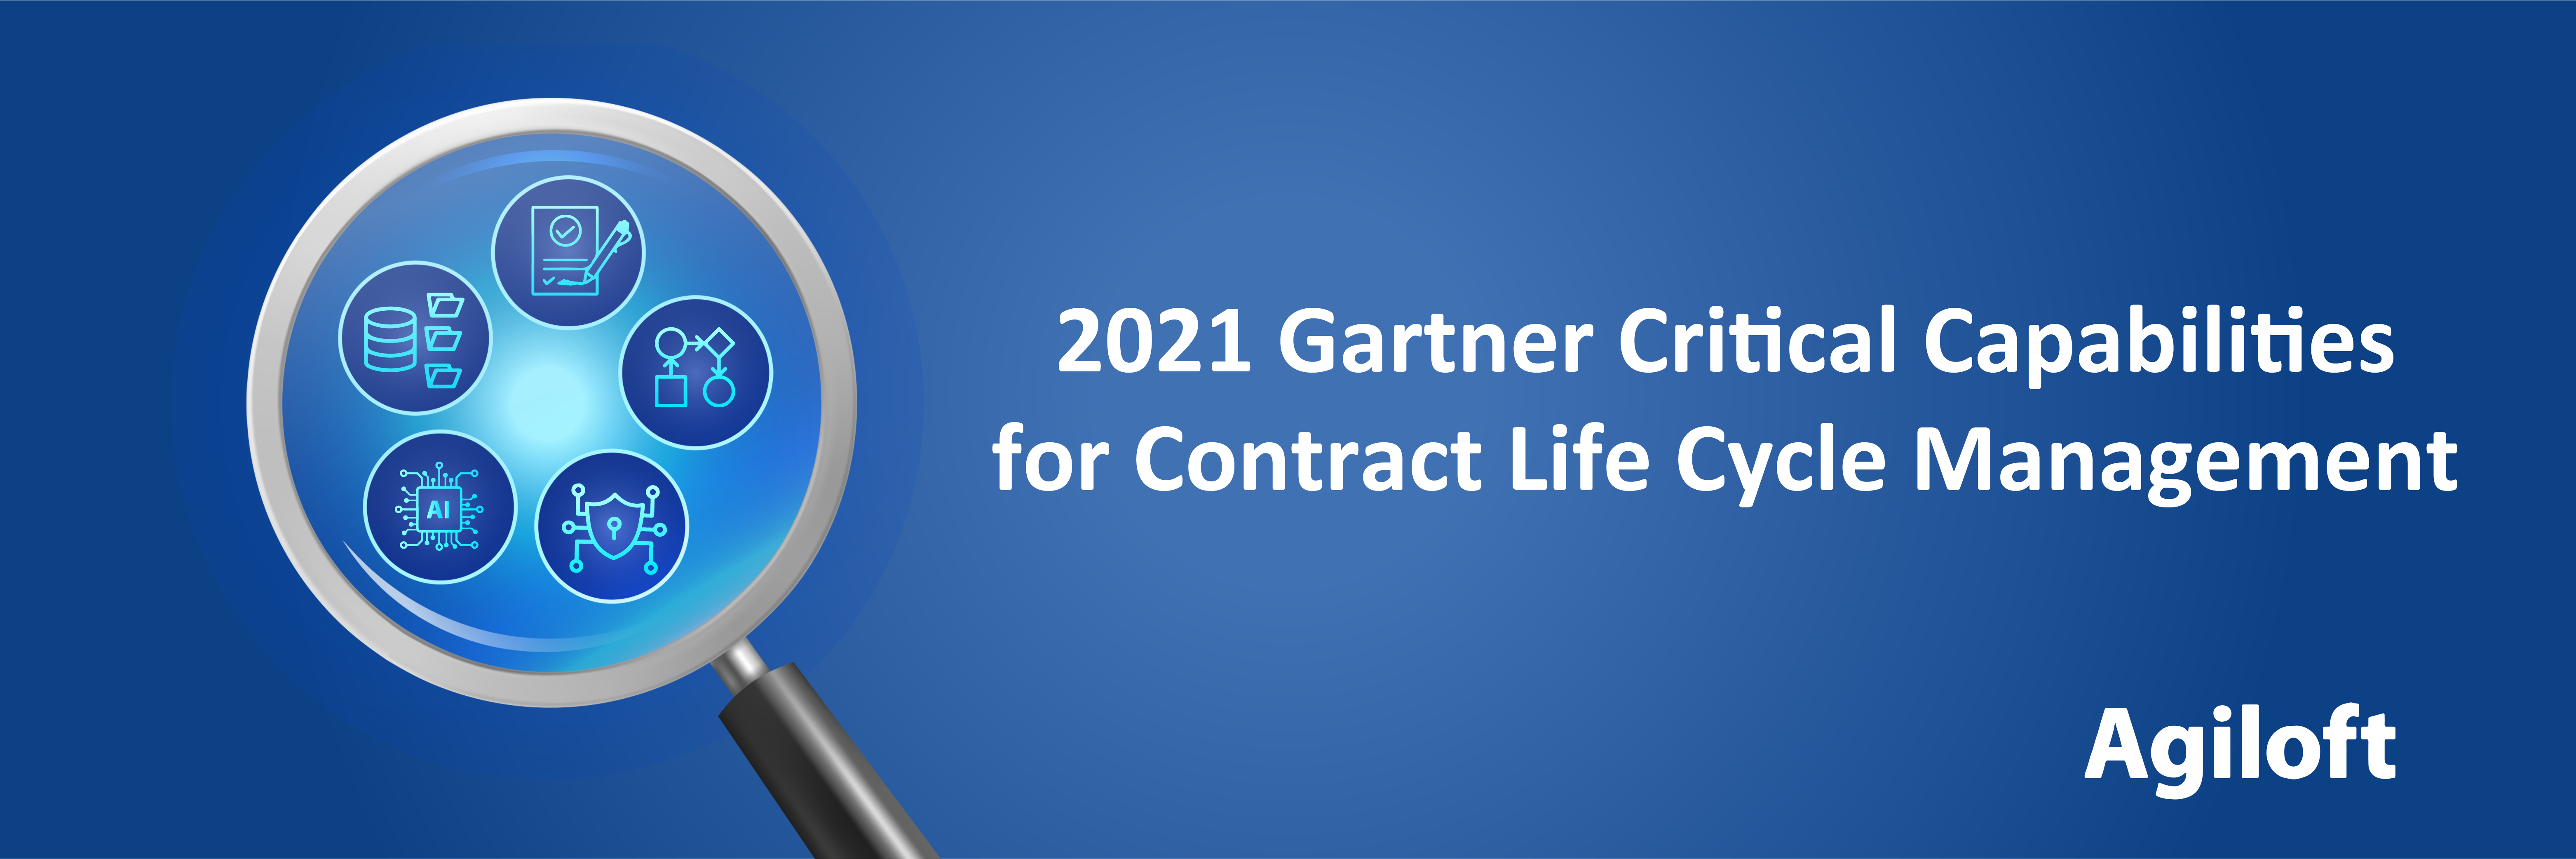 2021 Gartner Critical Capabilities for Contract Lifecycle Management